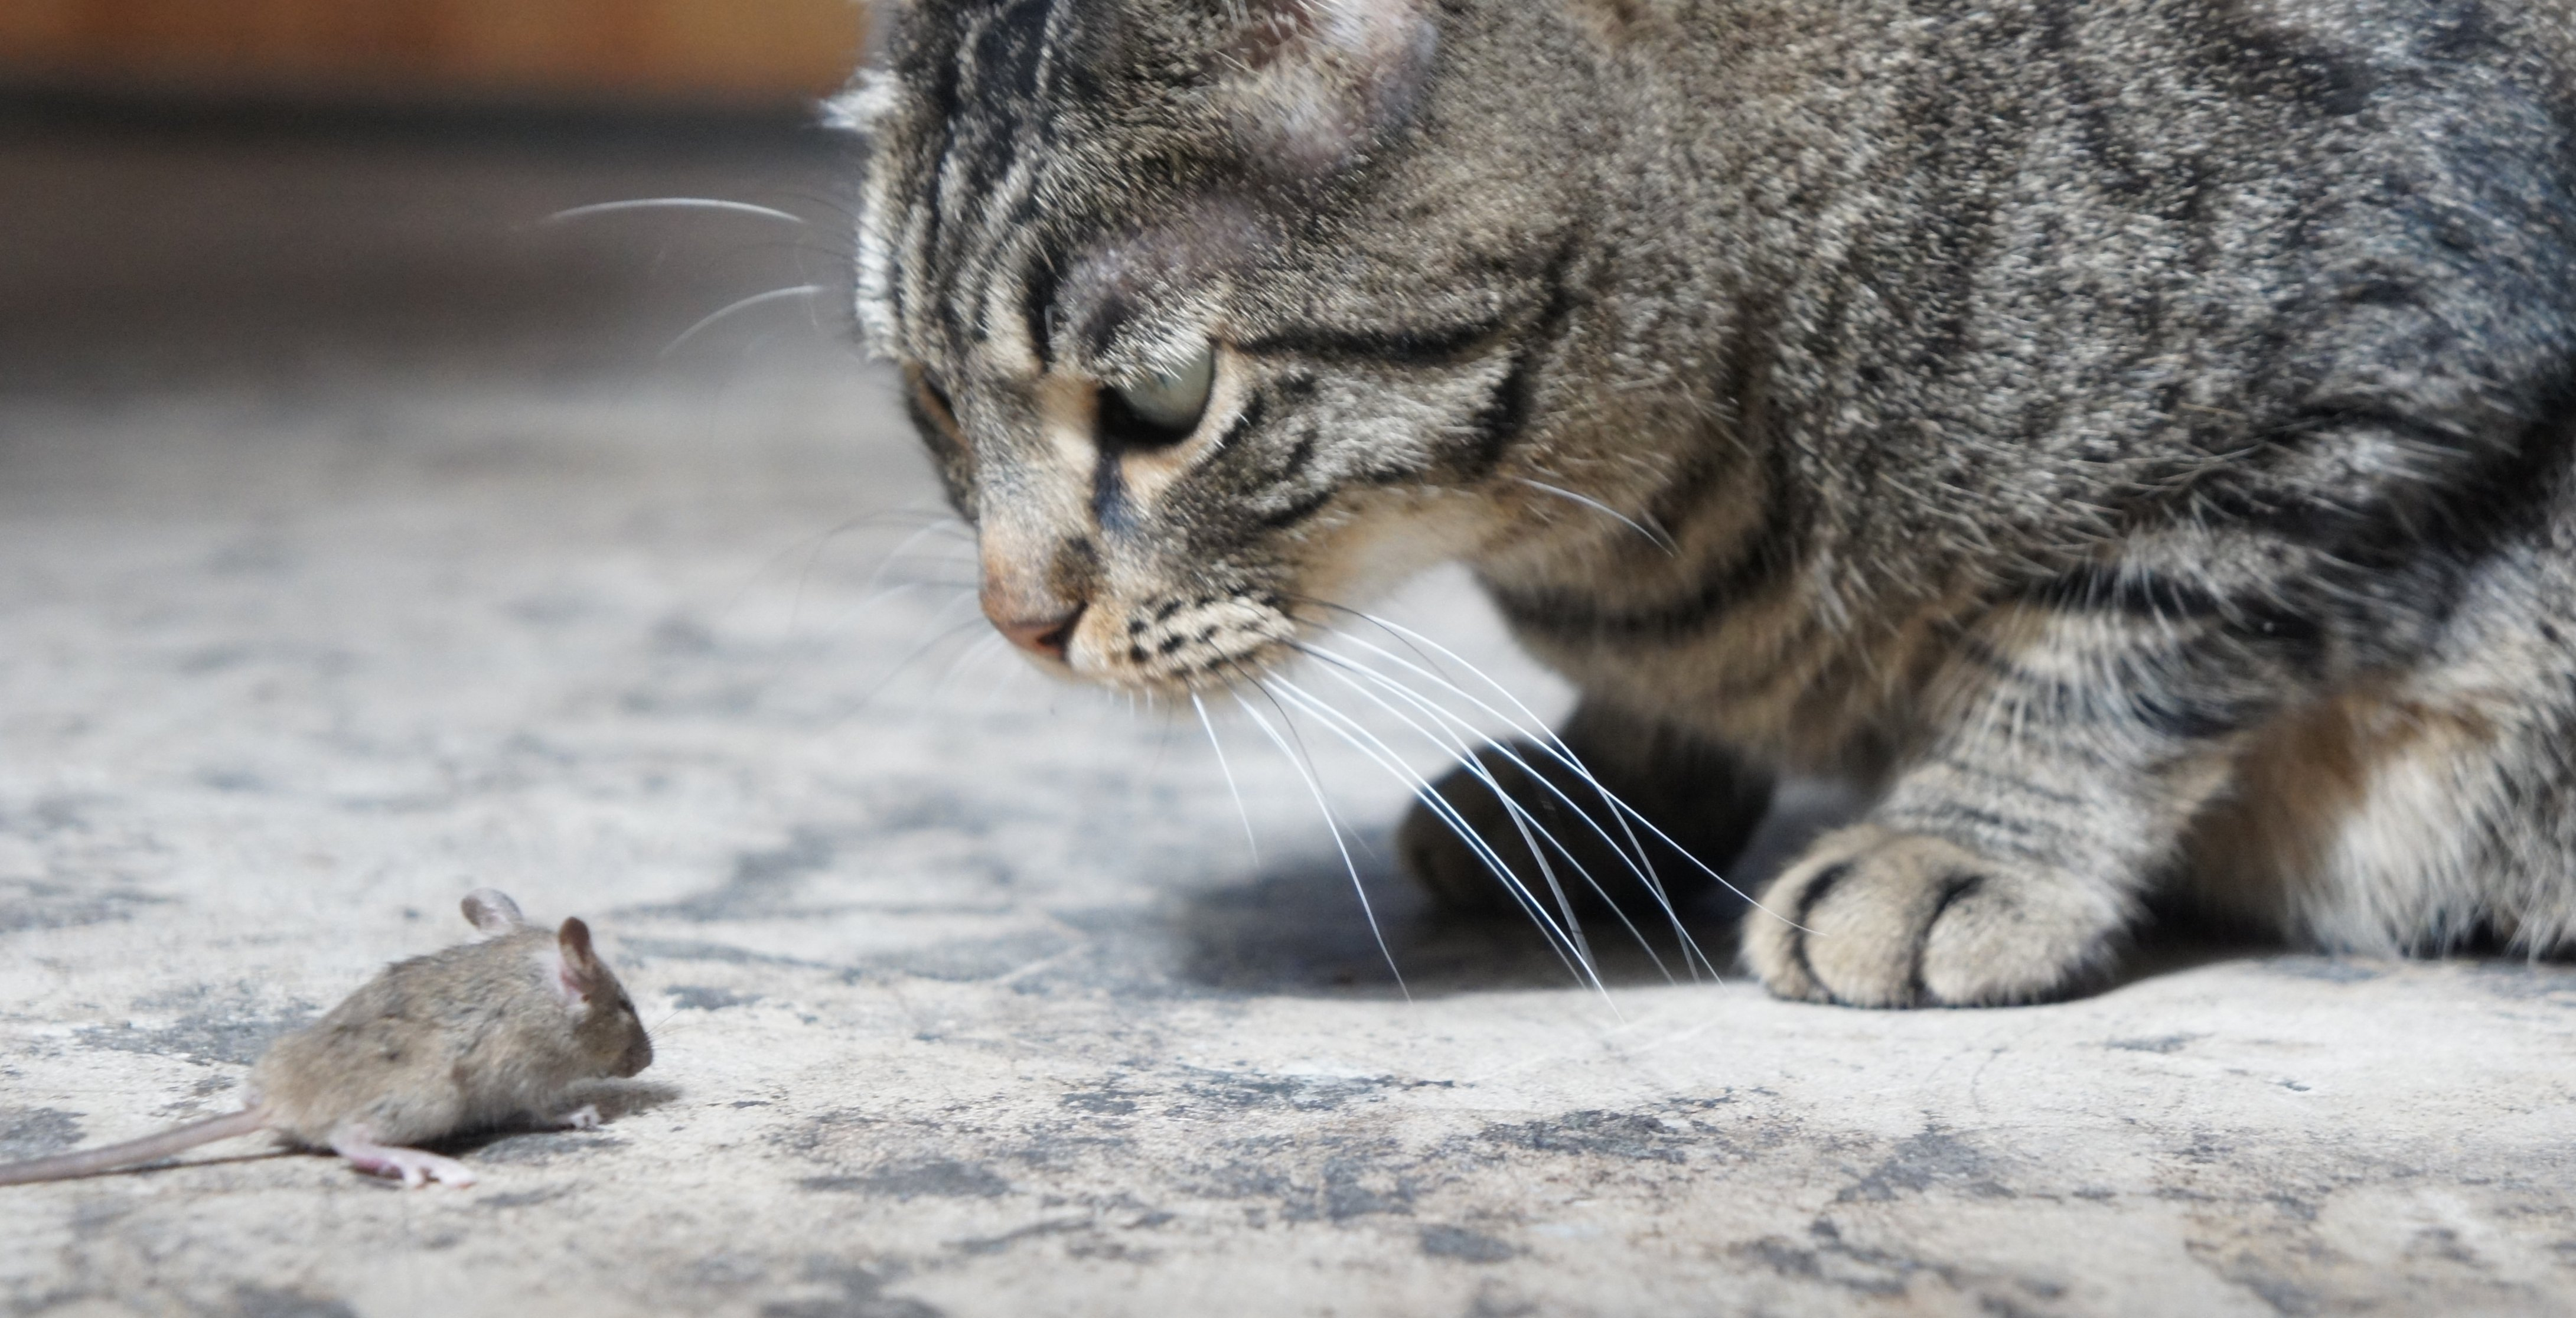 Playing Cat and Mouse Games